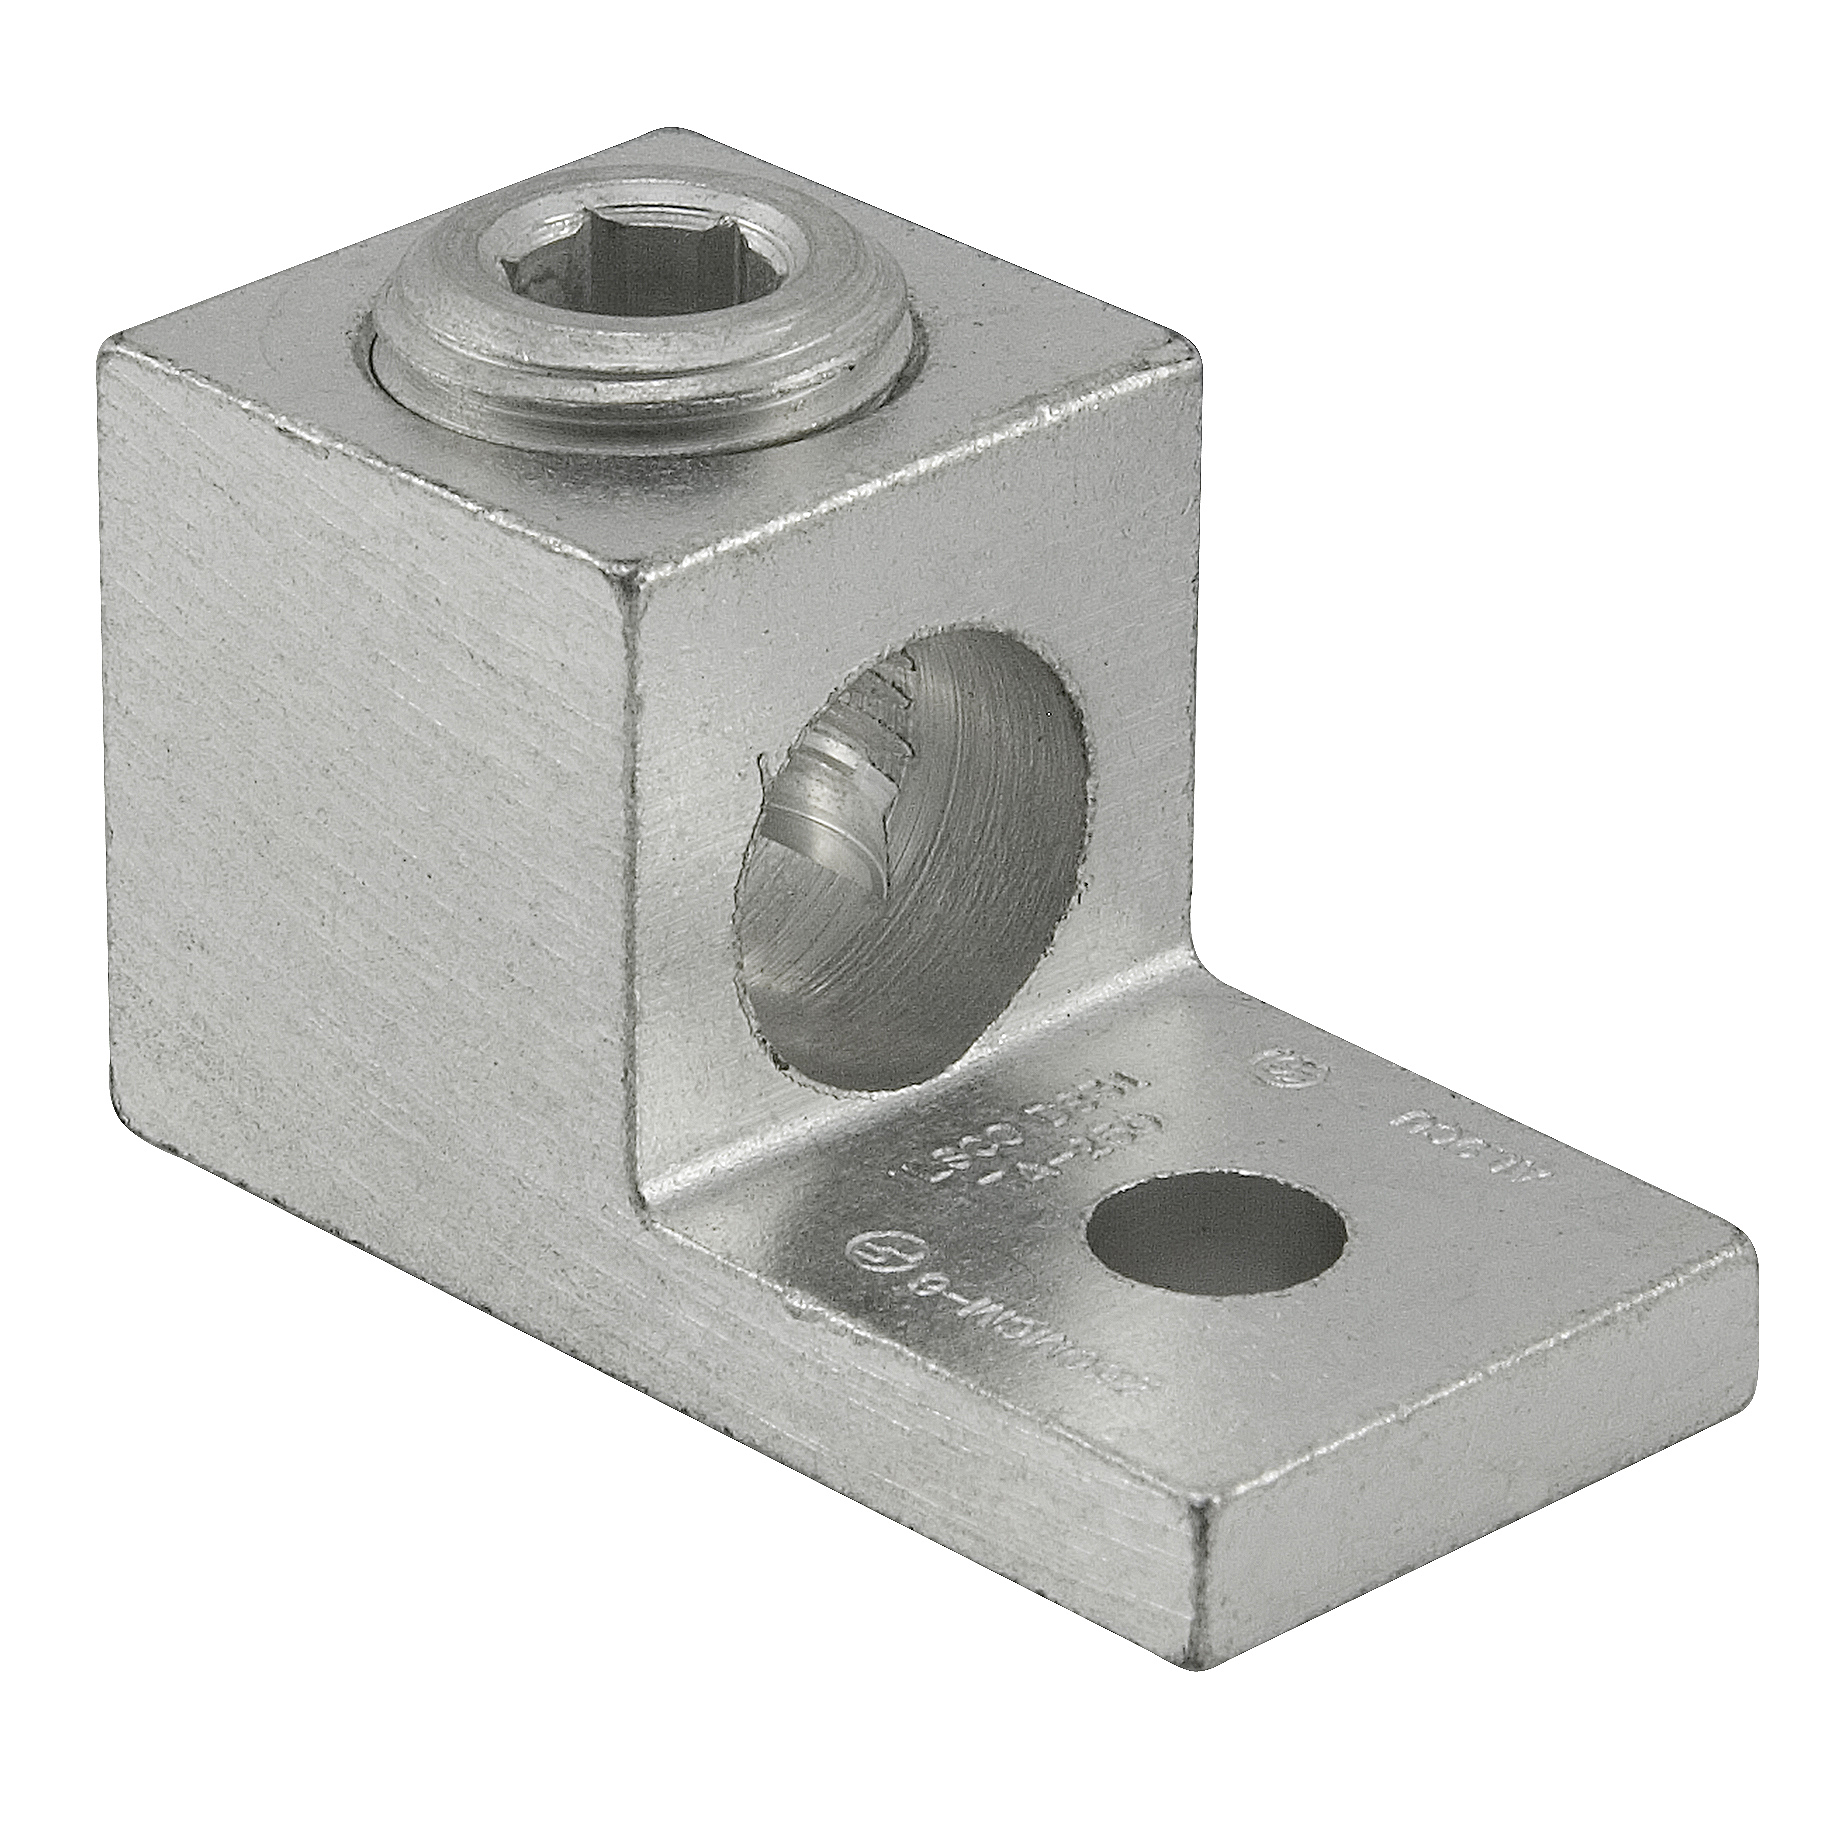 Products Ilsco Elt C Tap Compression Connector Shape 2 0 1 Copper Pigtailing Aluminum Wiring Ta Series Dual Rated Mechanical Terminal Lug 6 Awg To 250 Kcmil Conductor 5 16 In Stud